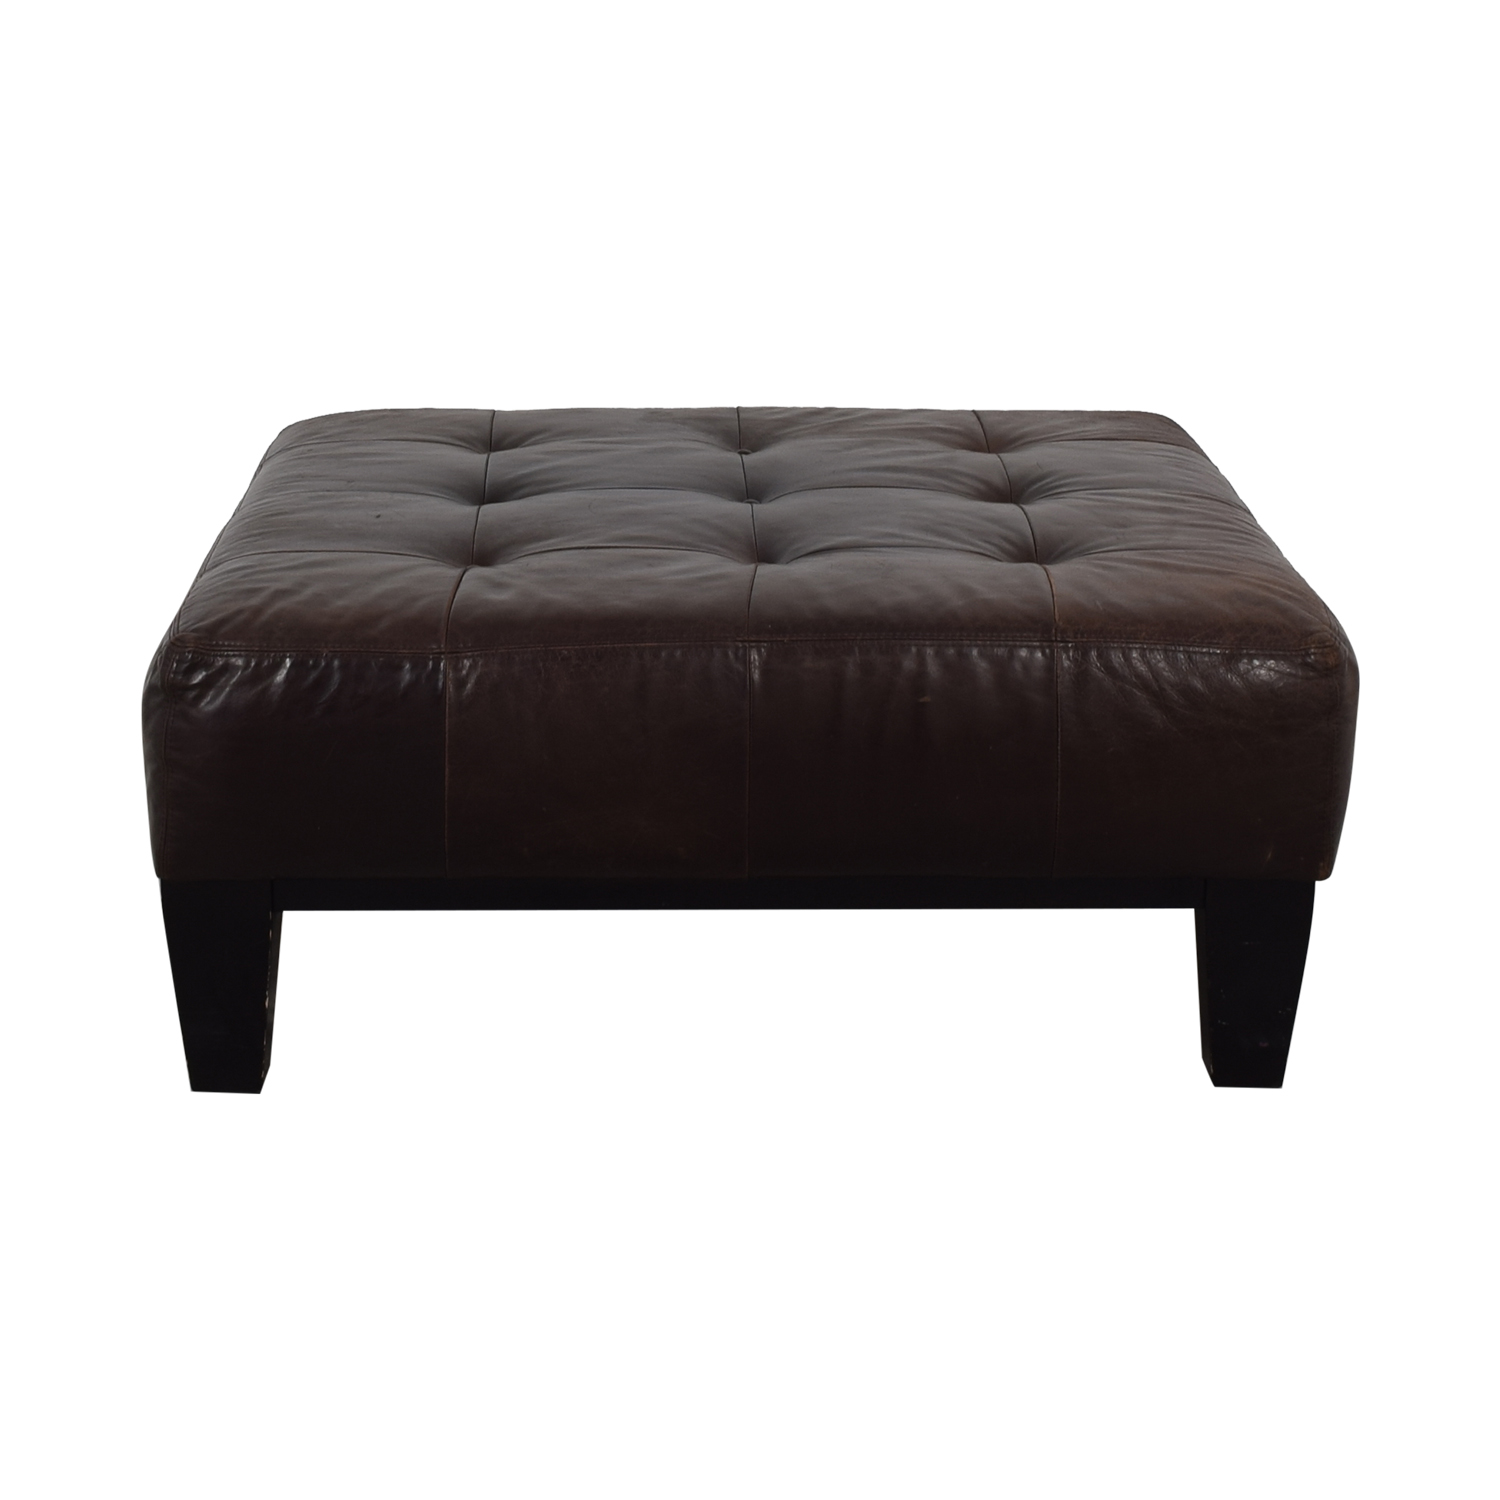 Pottery Barn Pottery Barn Brown Tufted Ottoman on sale